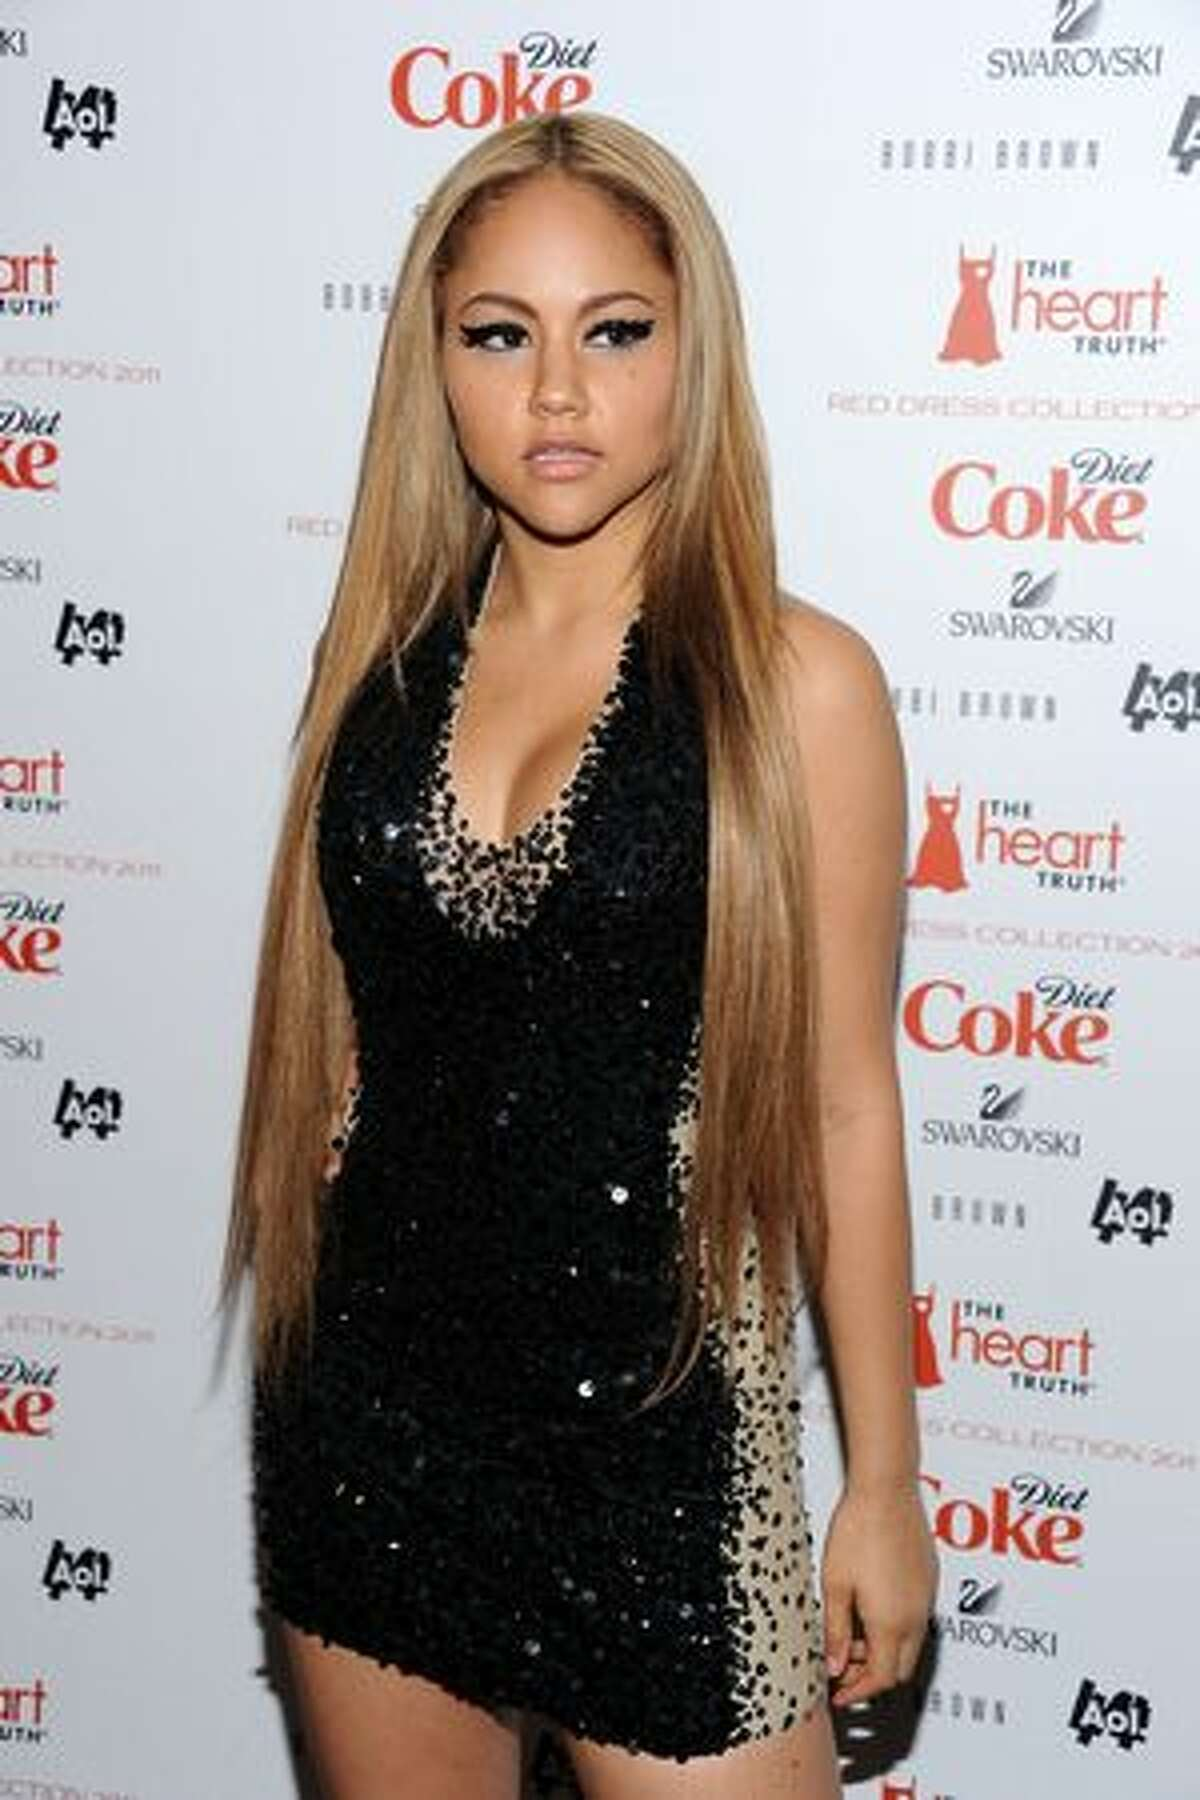 Kat Deluna's exaggerated rendition of The Star-Spangled Banner in 2008 warranted the wave of